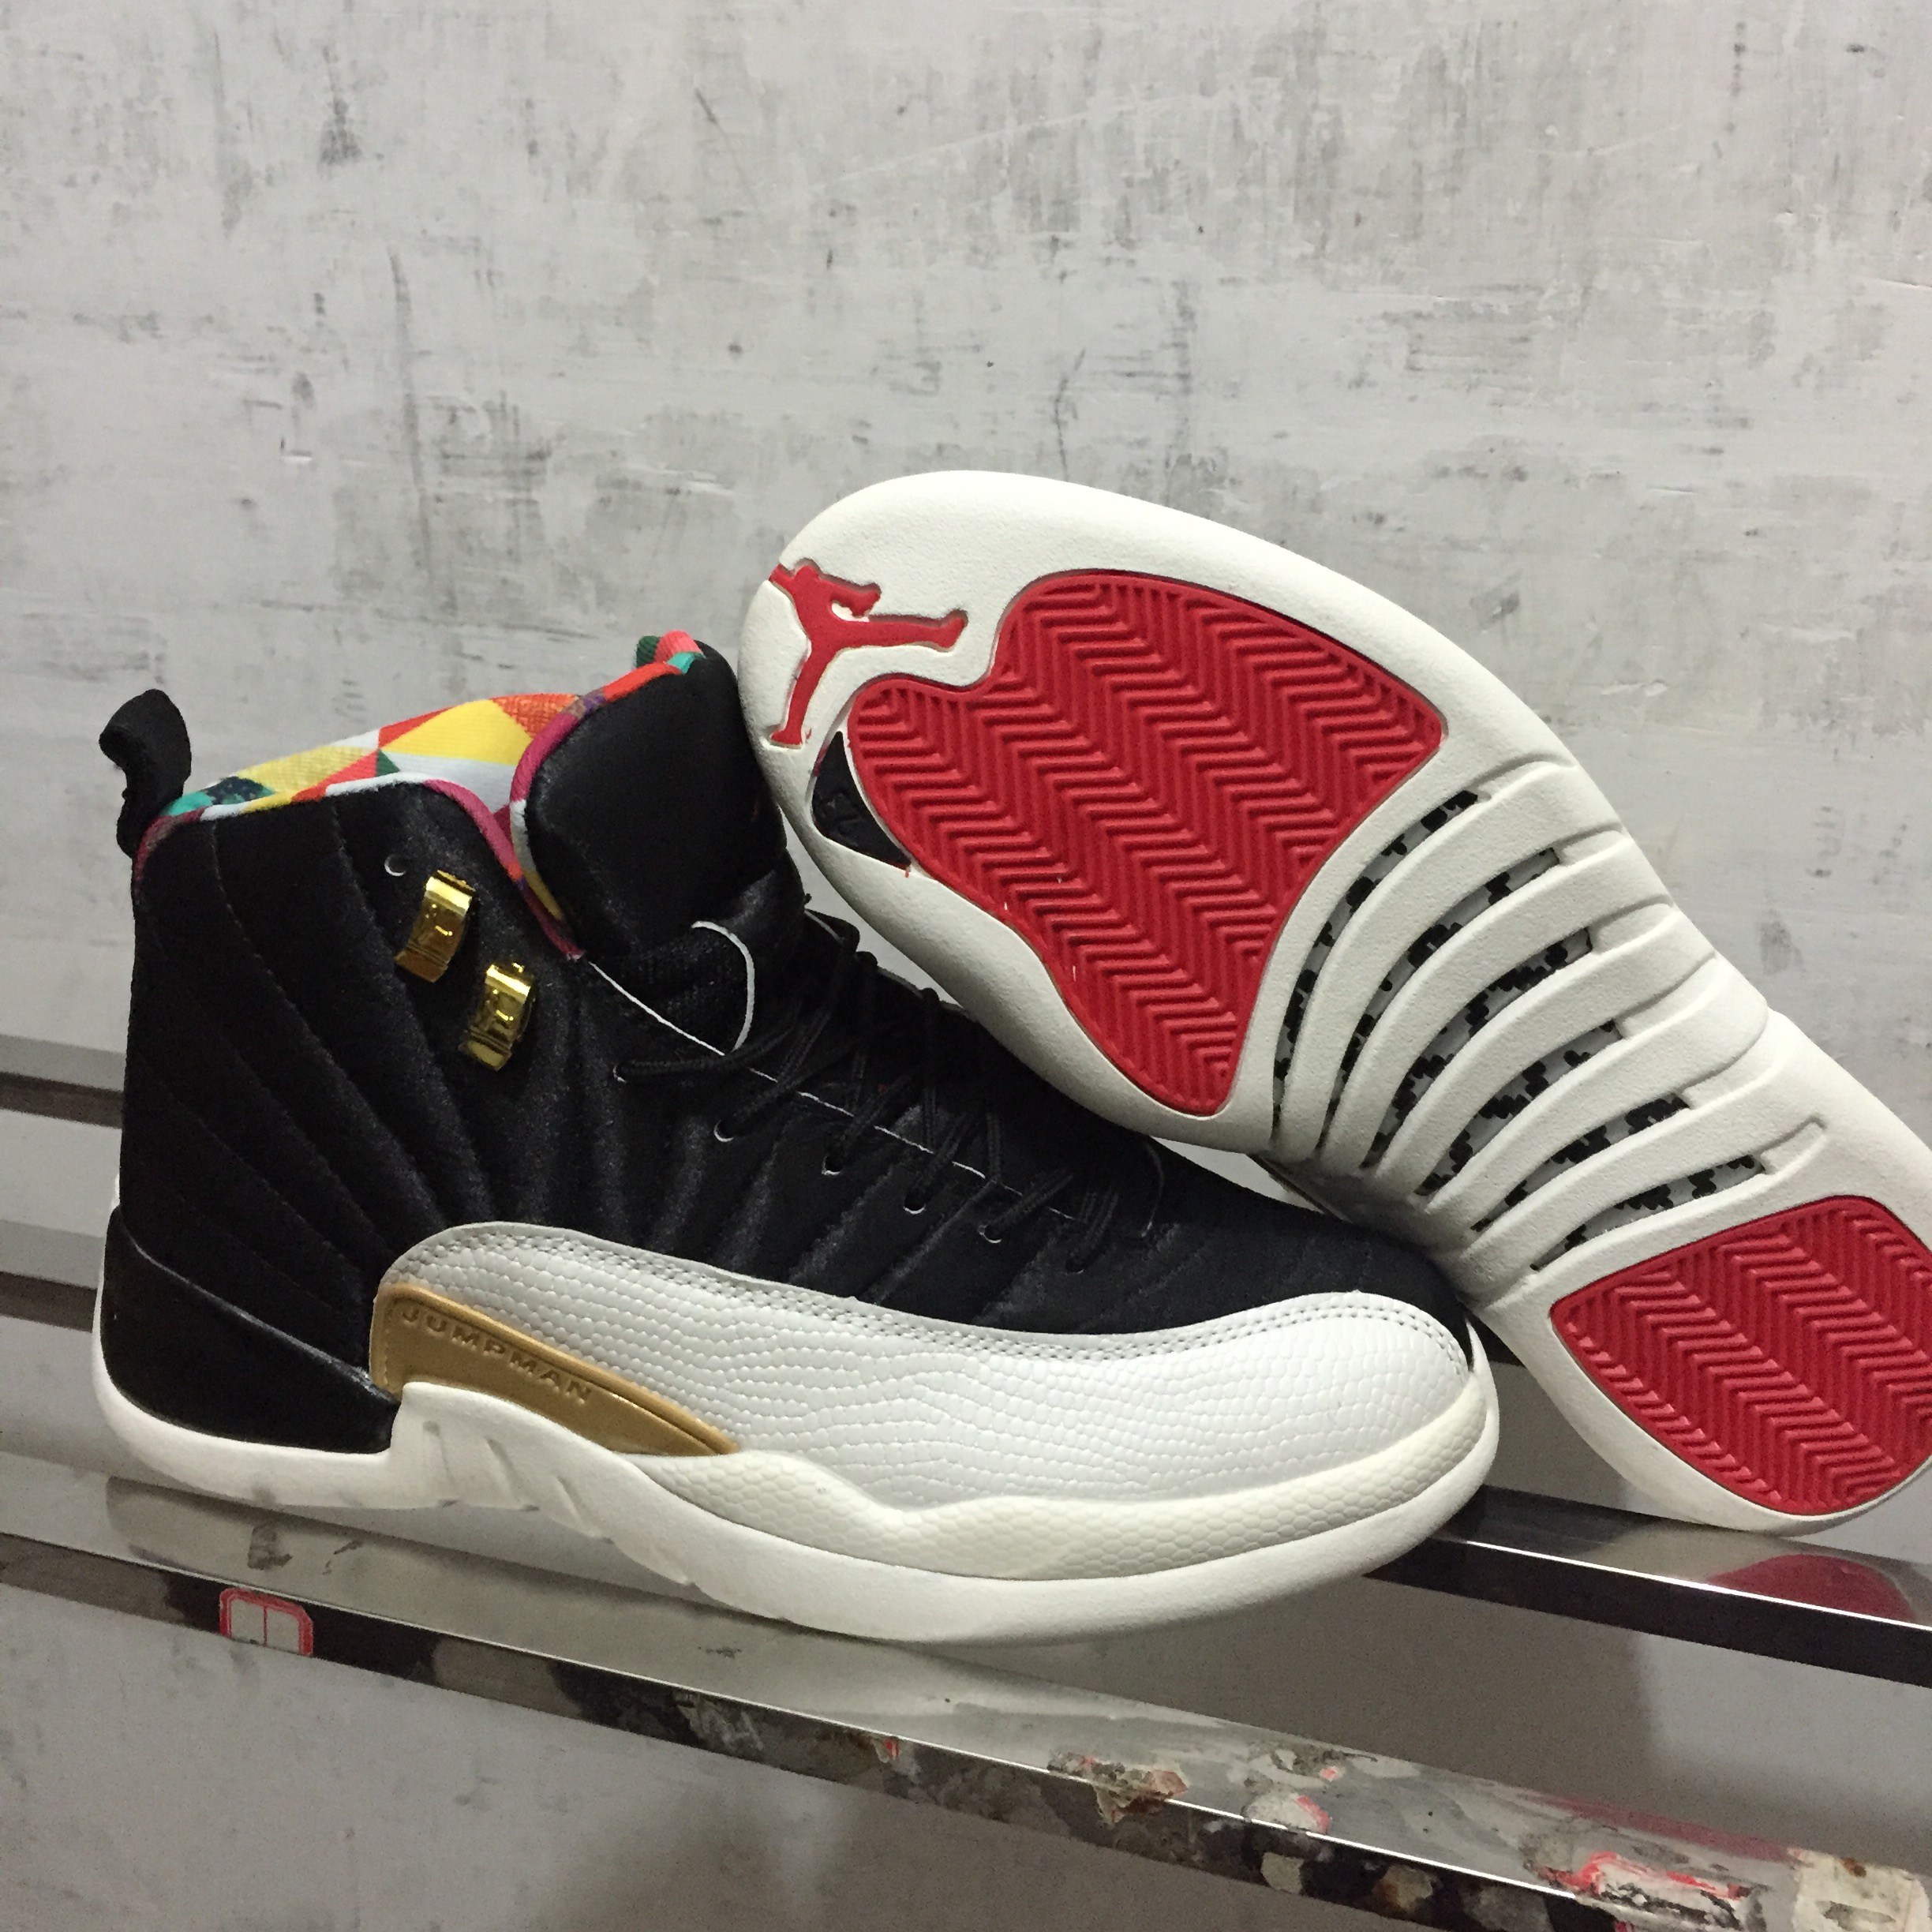 2019 Air Jordan 12 CNY Black White Gold Red